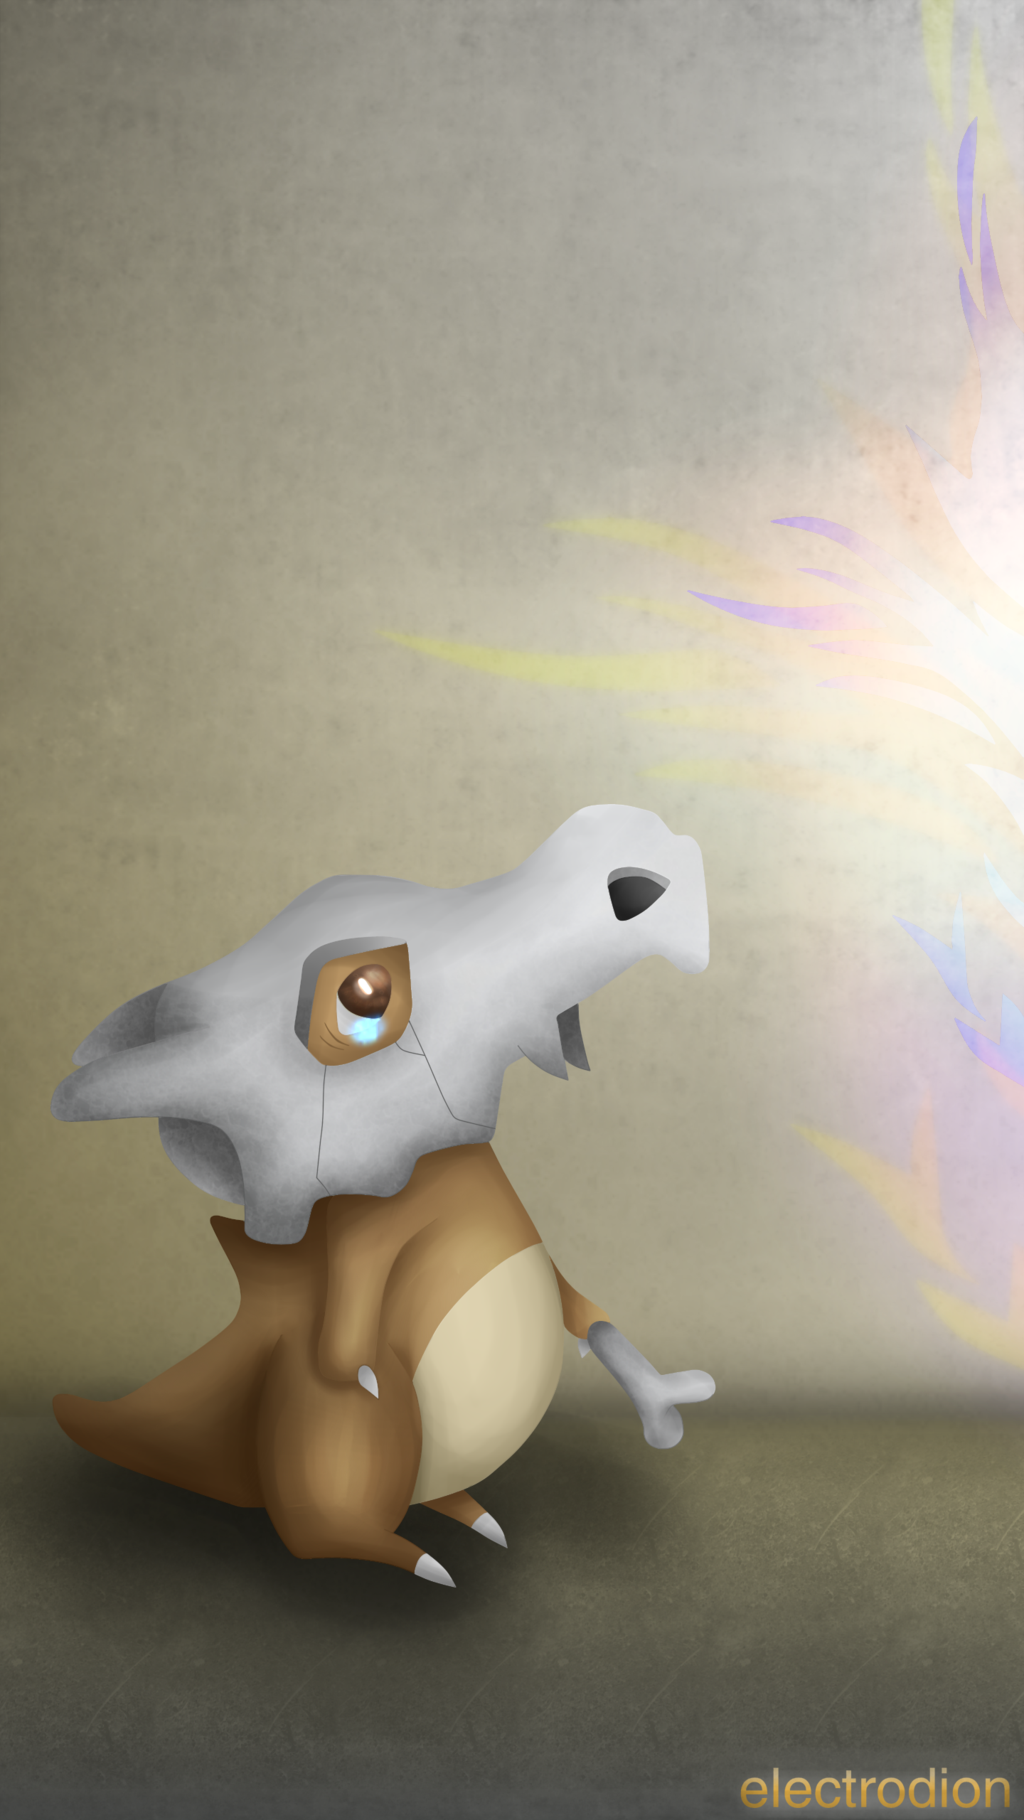 Remake: Cubone Smartphone Wallpaper [QHD] by electrodion on DeviantArt